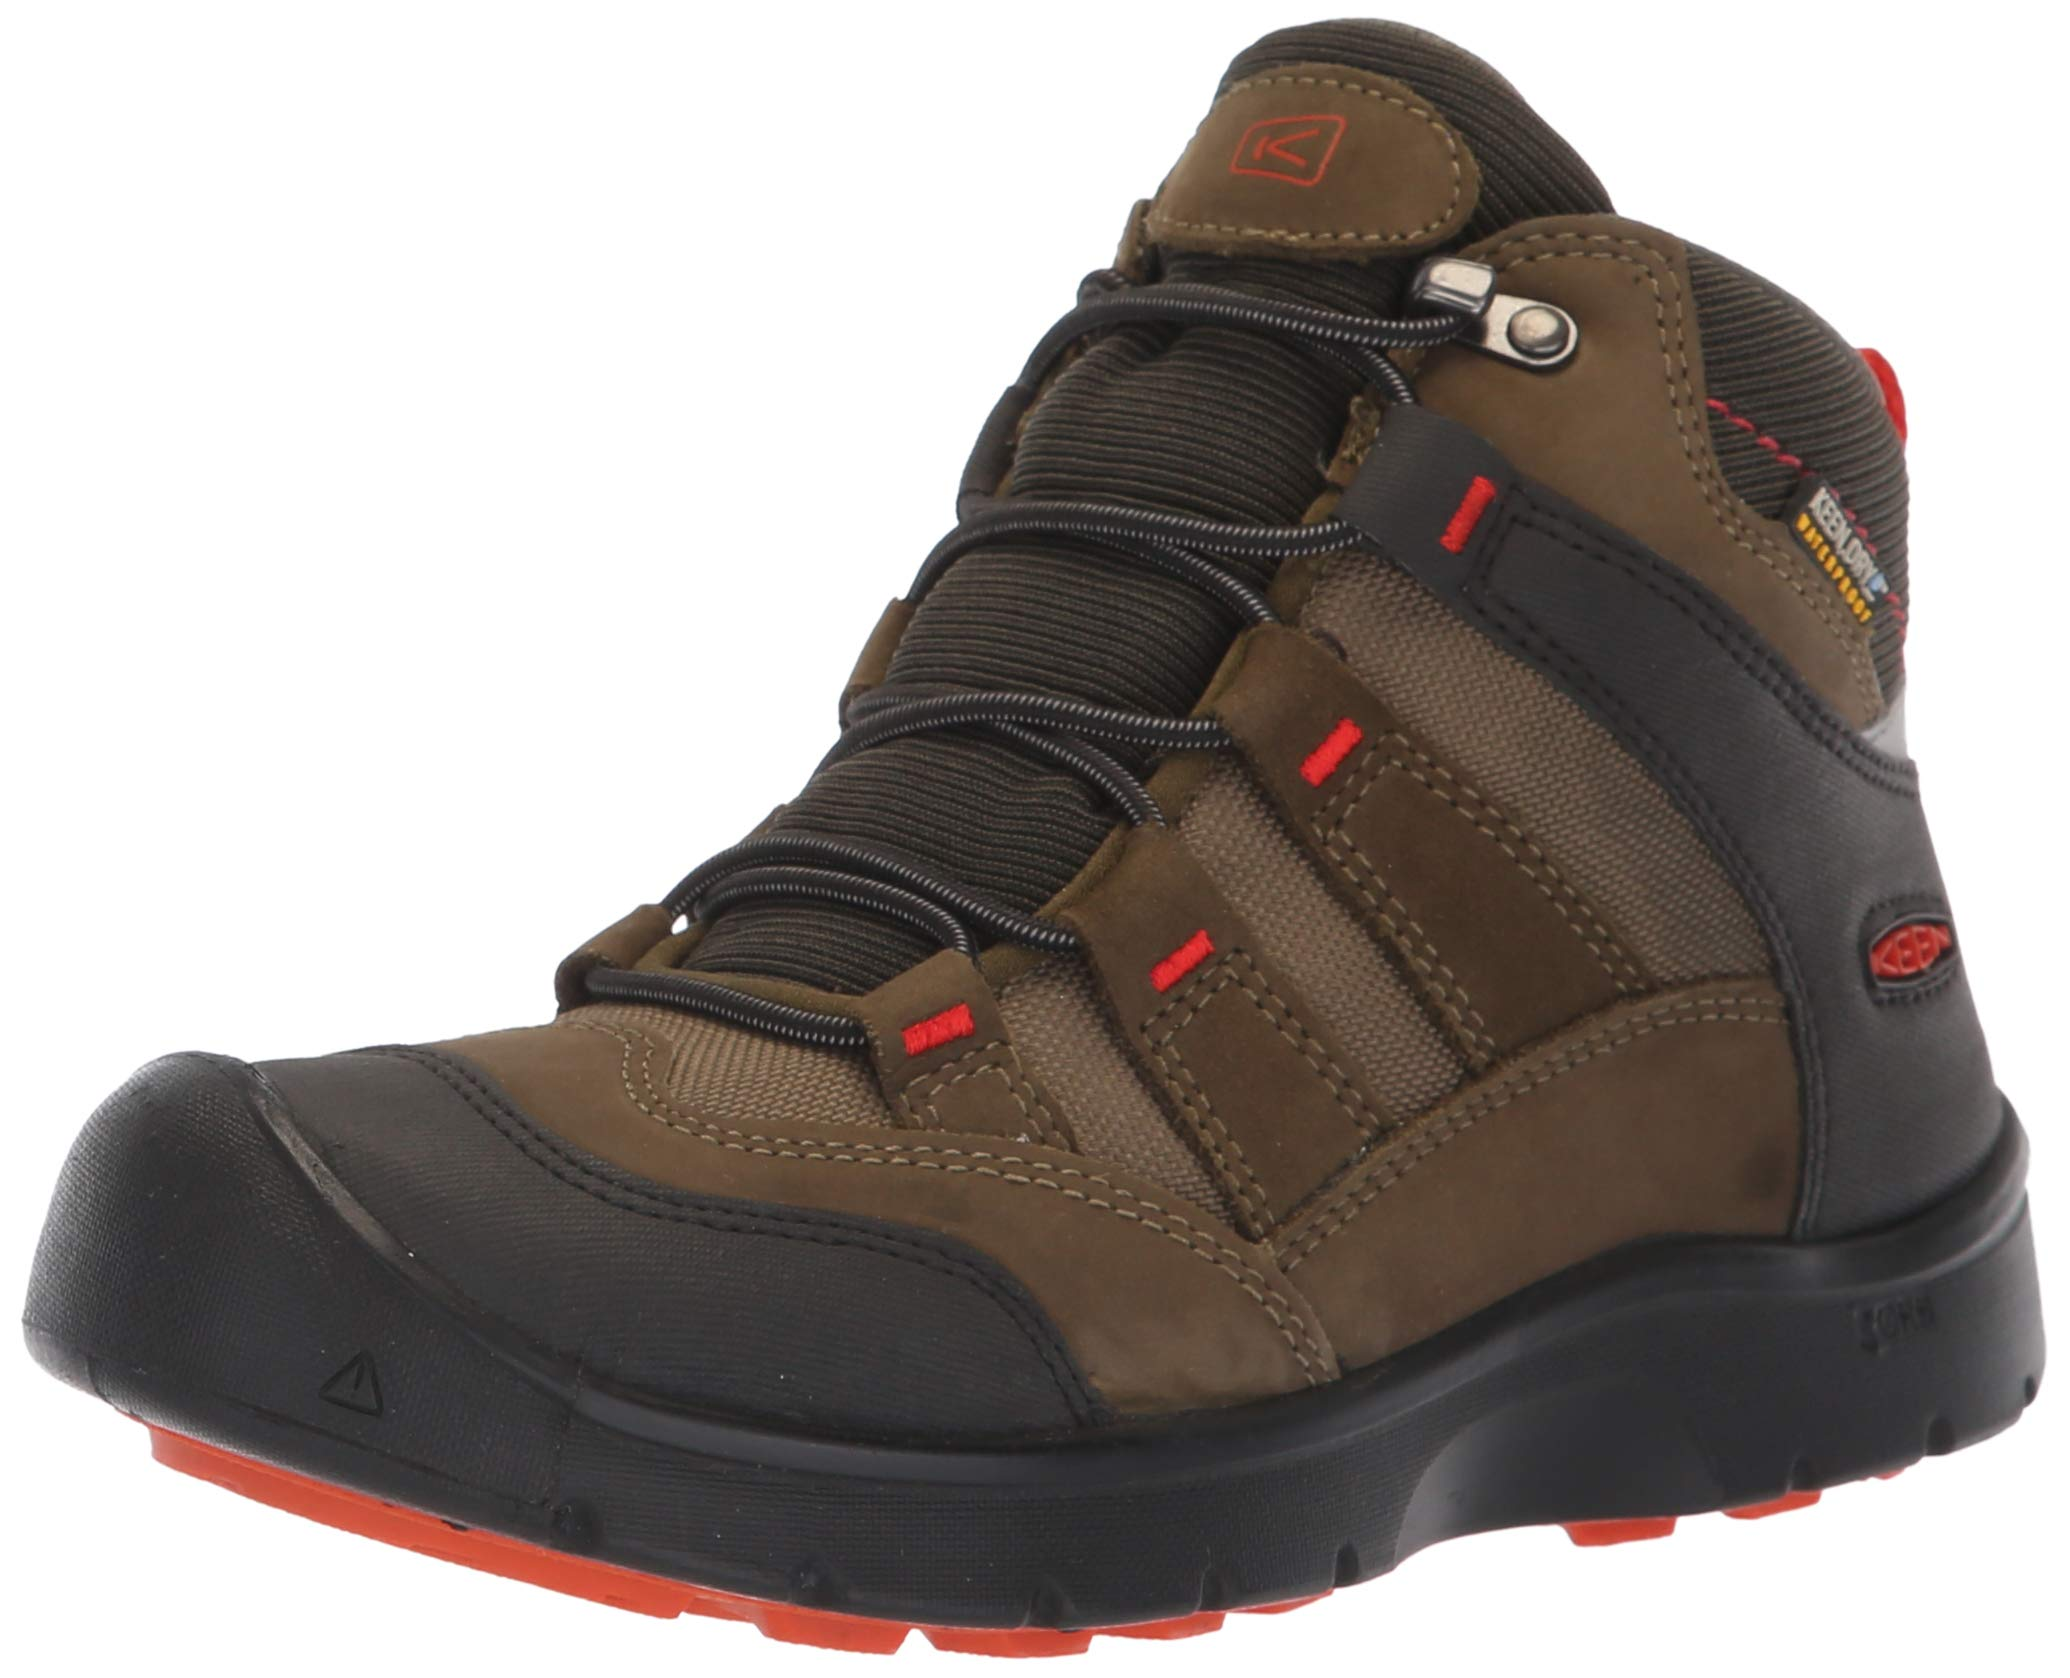 KEEN Unisex HIKEPORT MID WP Hiking Boot, Martini Olive/pureed Pumpkin, 12 M US Little Kid by KEEN (Image #1)